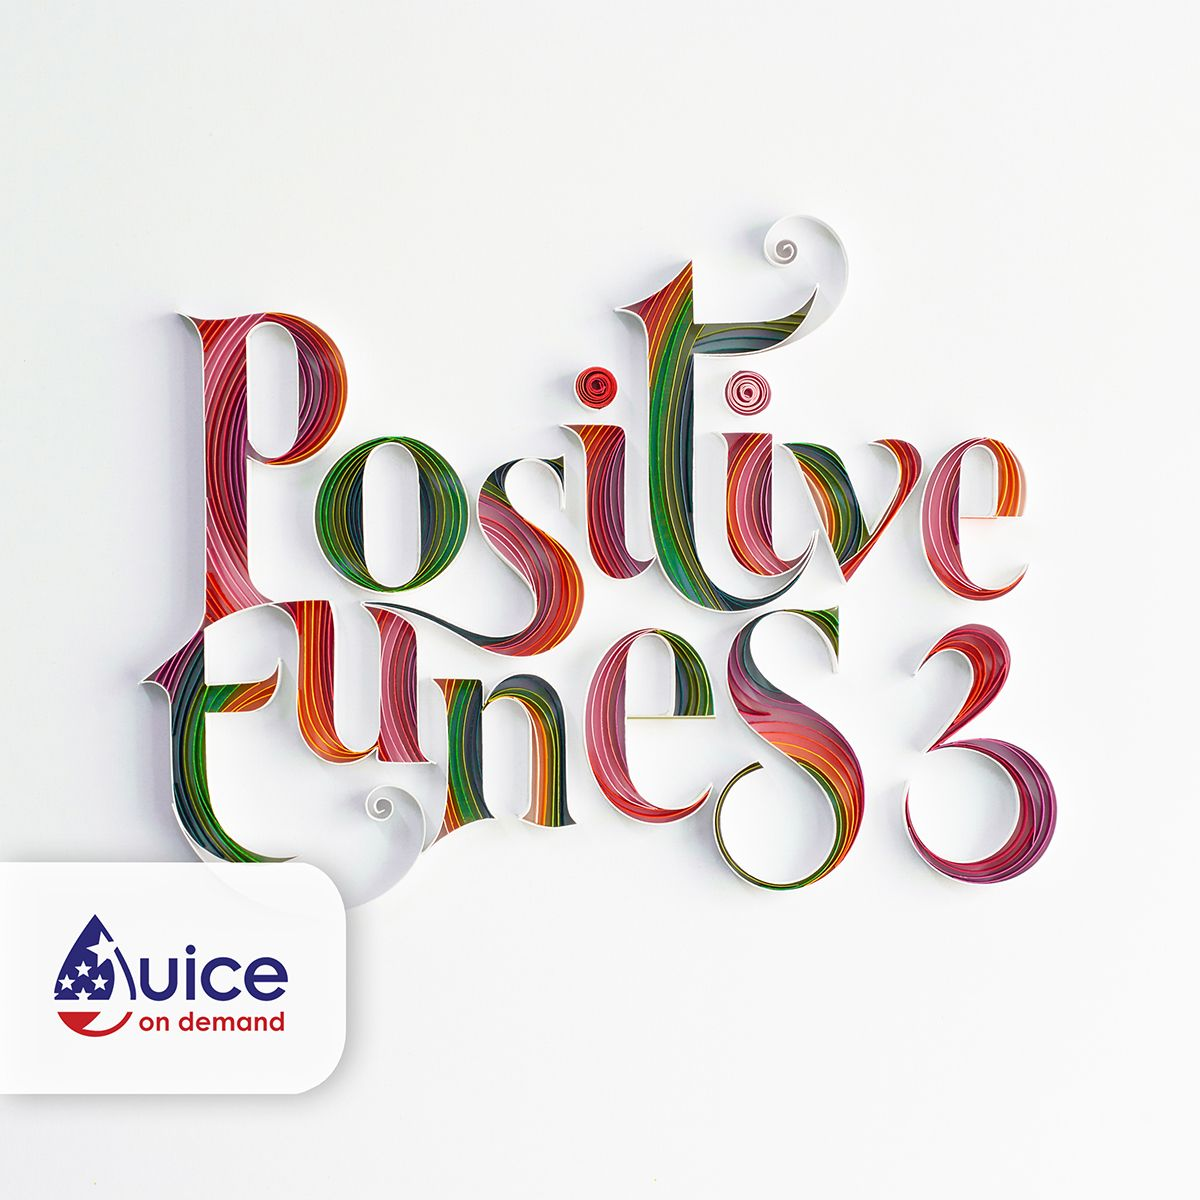 https://www.behance.net/gallery/47804271/Positive-tunes-3-4-EMI-Production-Music-covers